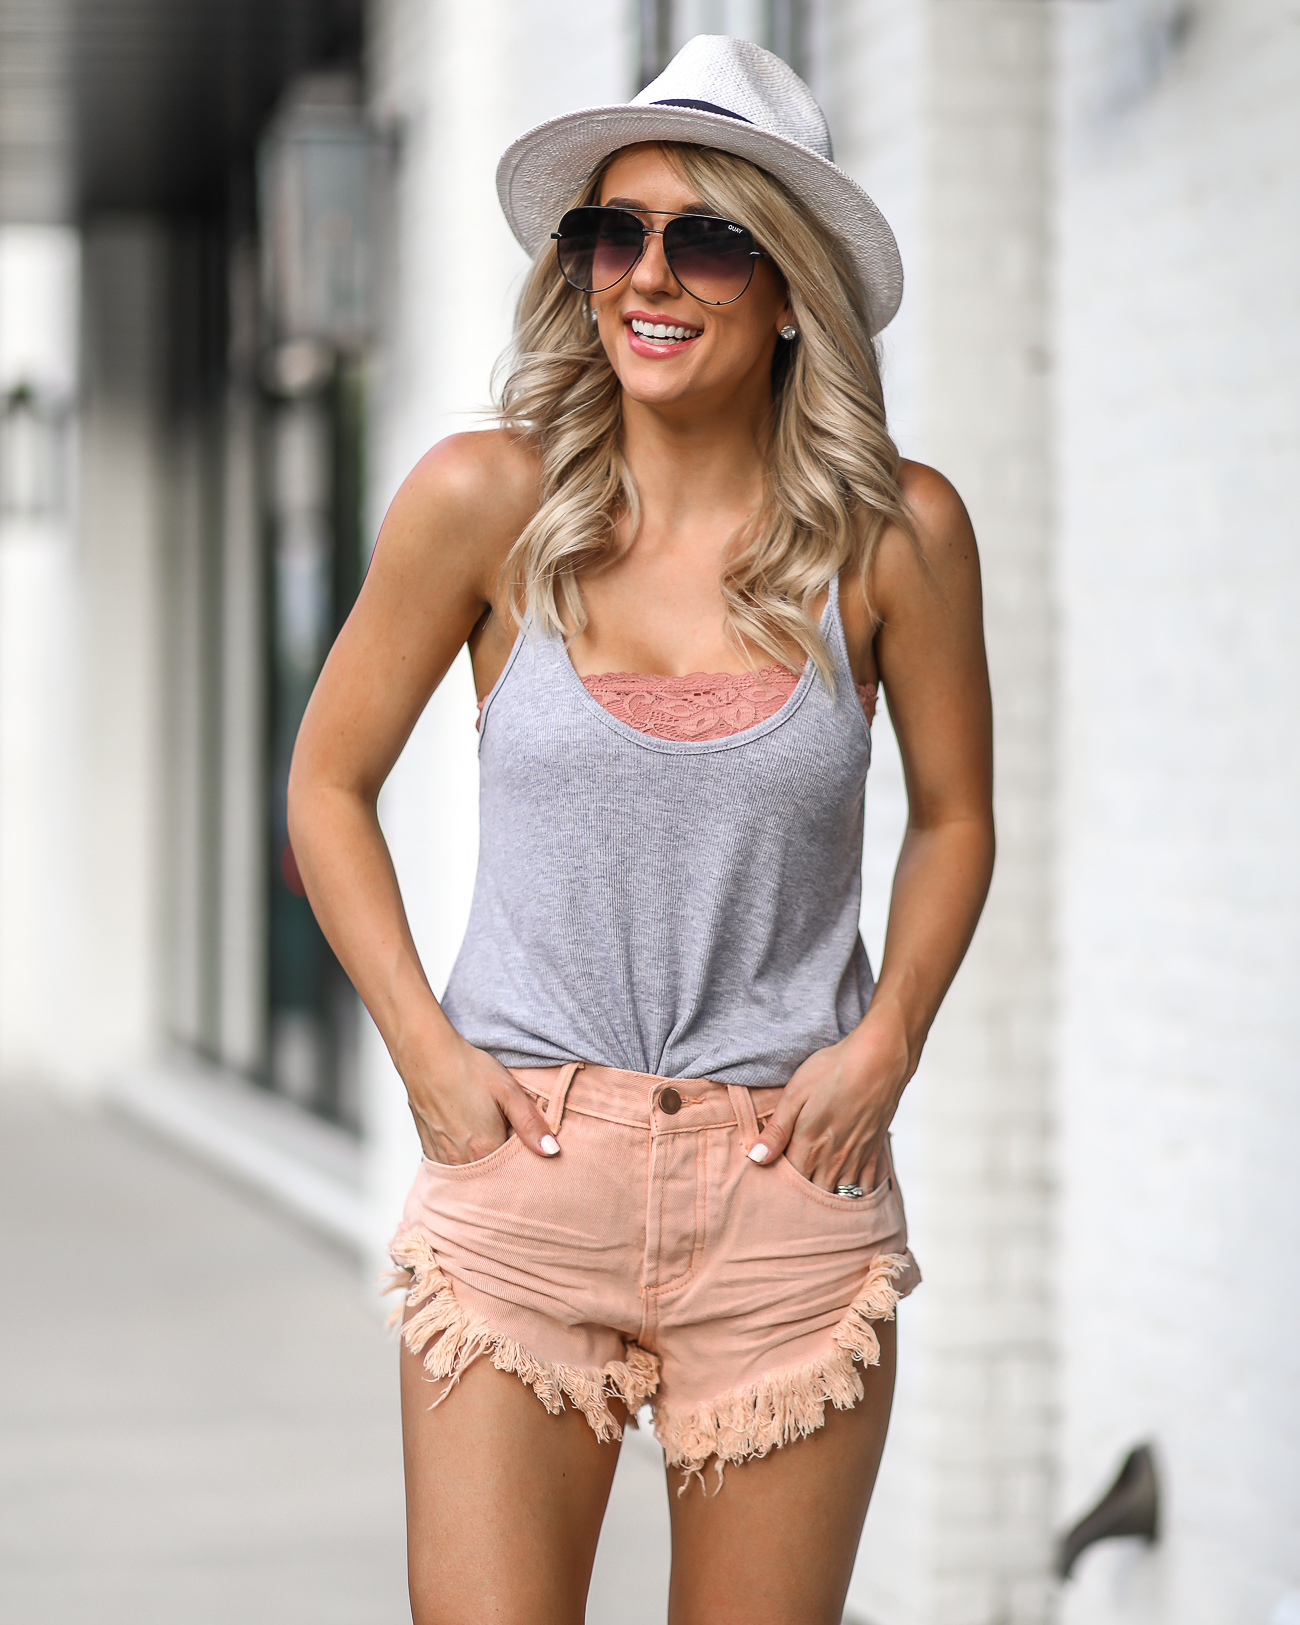 Summer Shorts Outfits Denim Shorts Under $50 Comfy Slip On Sneakers White Panama Hat Quay Australia X Desi High Key Sunglasses In Black Fade